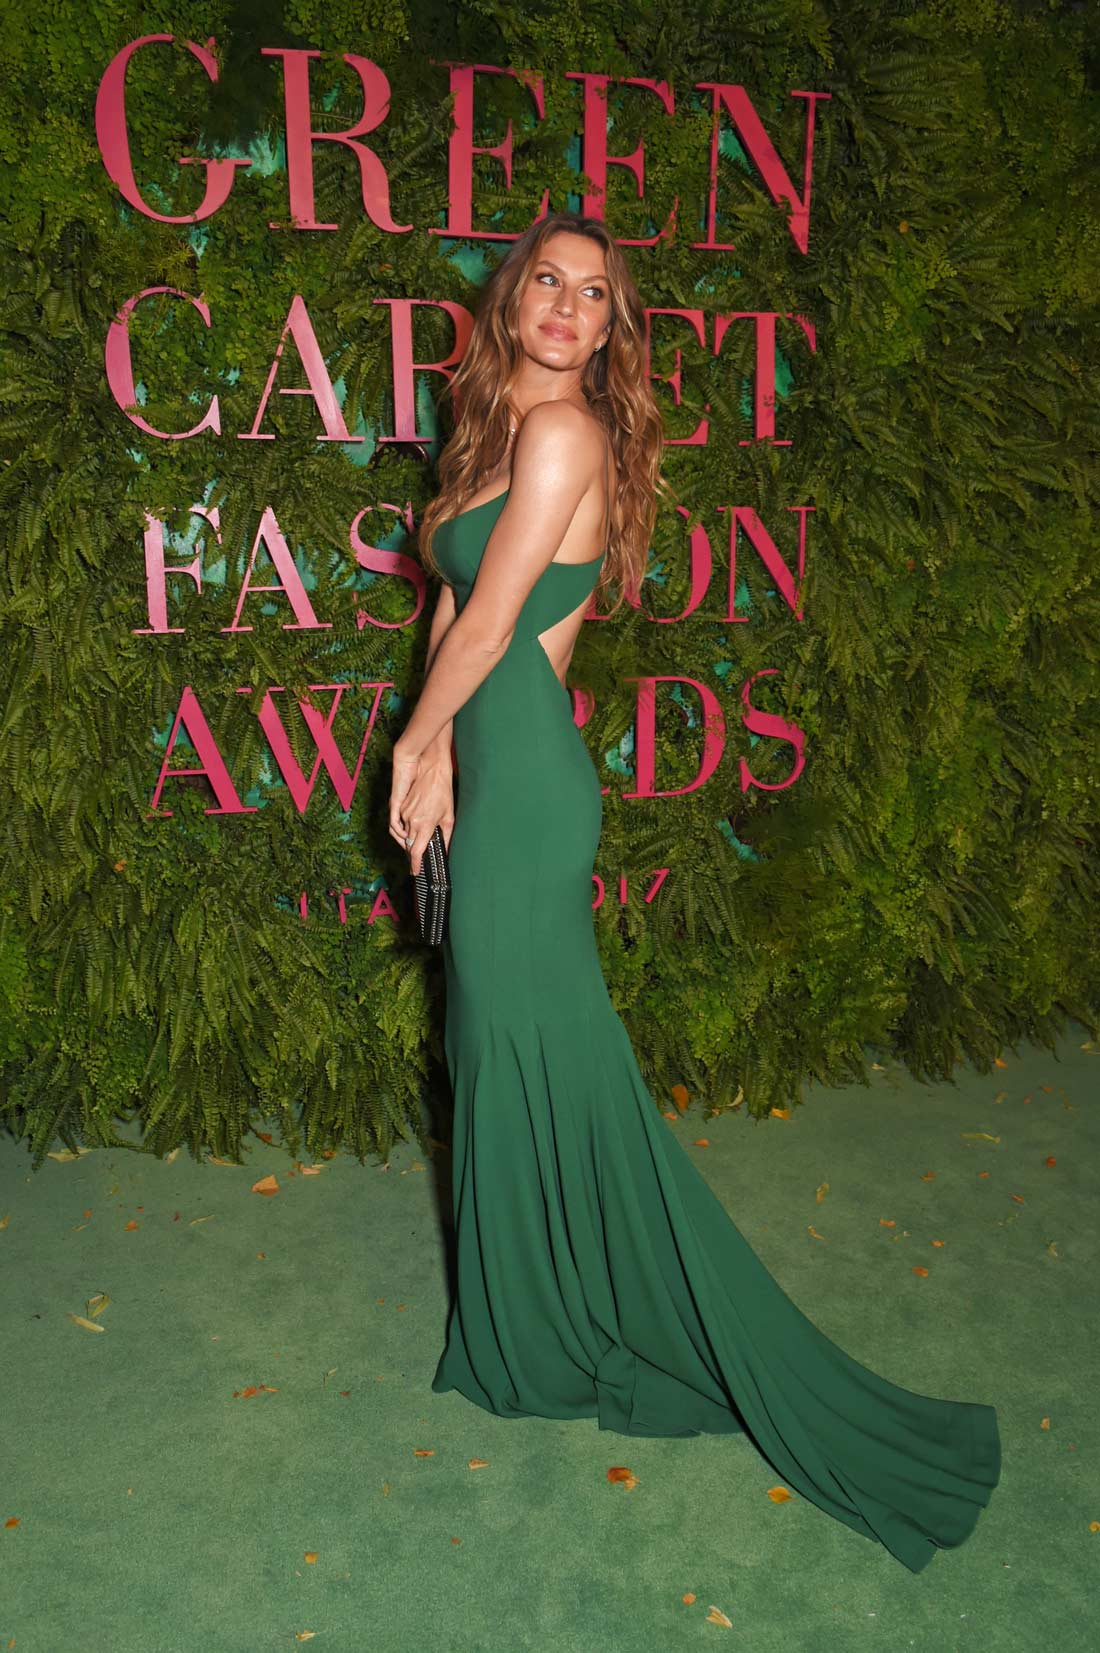 Green Carpet Fashion Awards Milano 2017